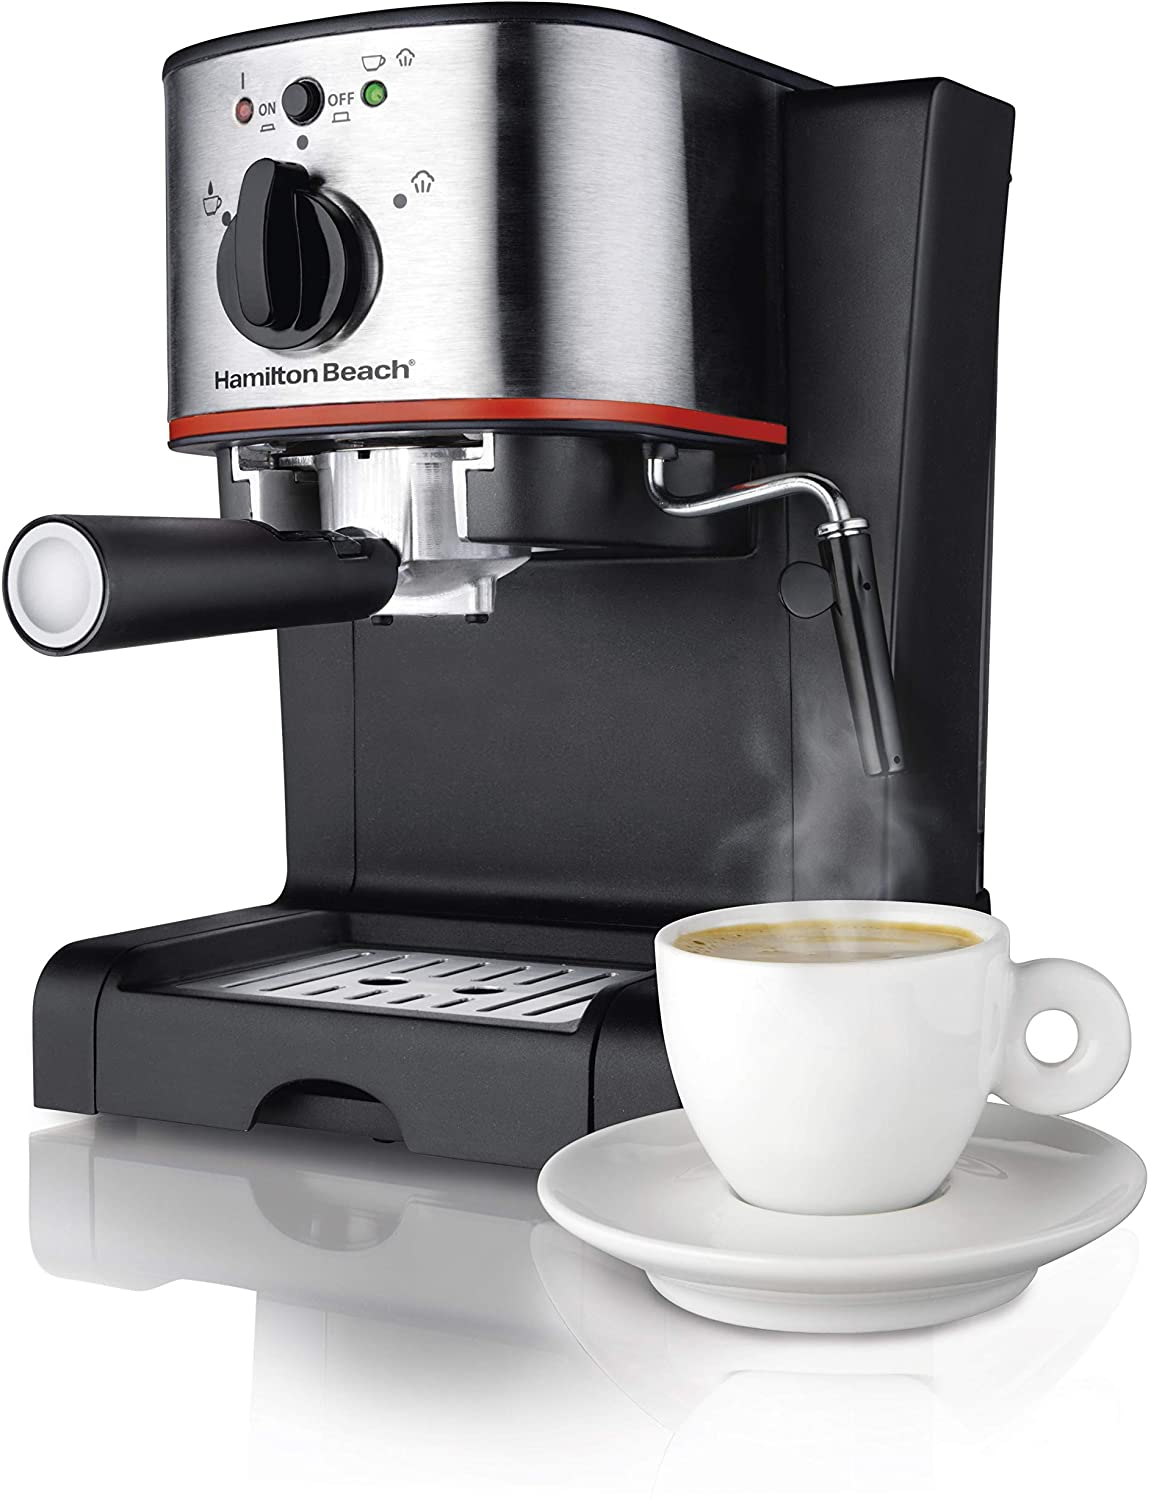 machine with cappuccino cup